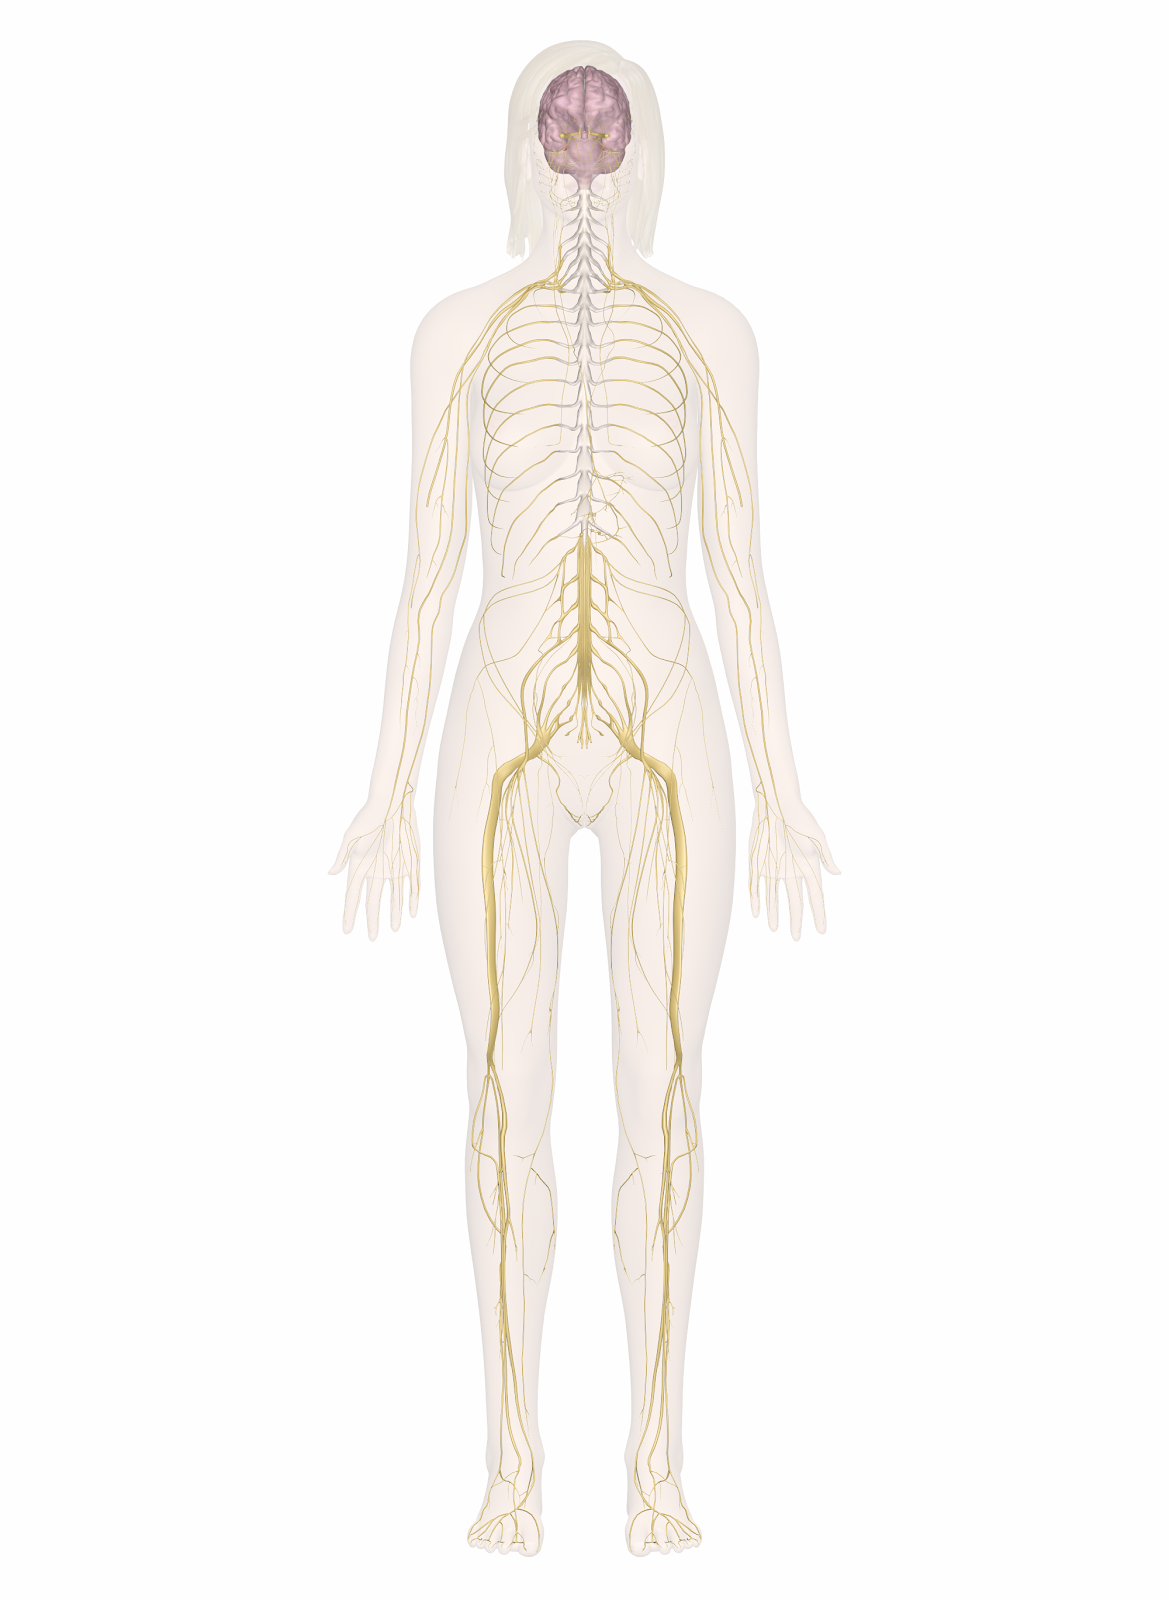 http://www.innerbody.com/assets/nervous_system.png